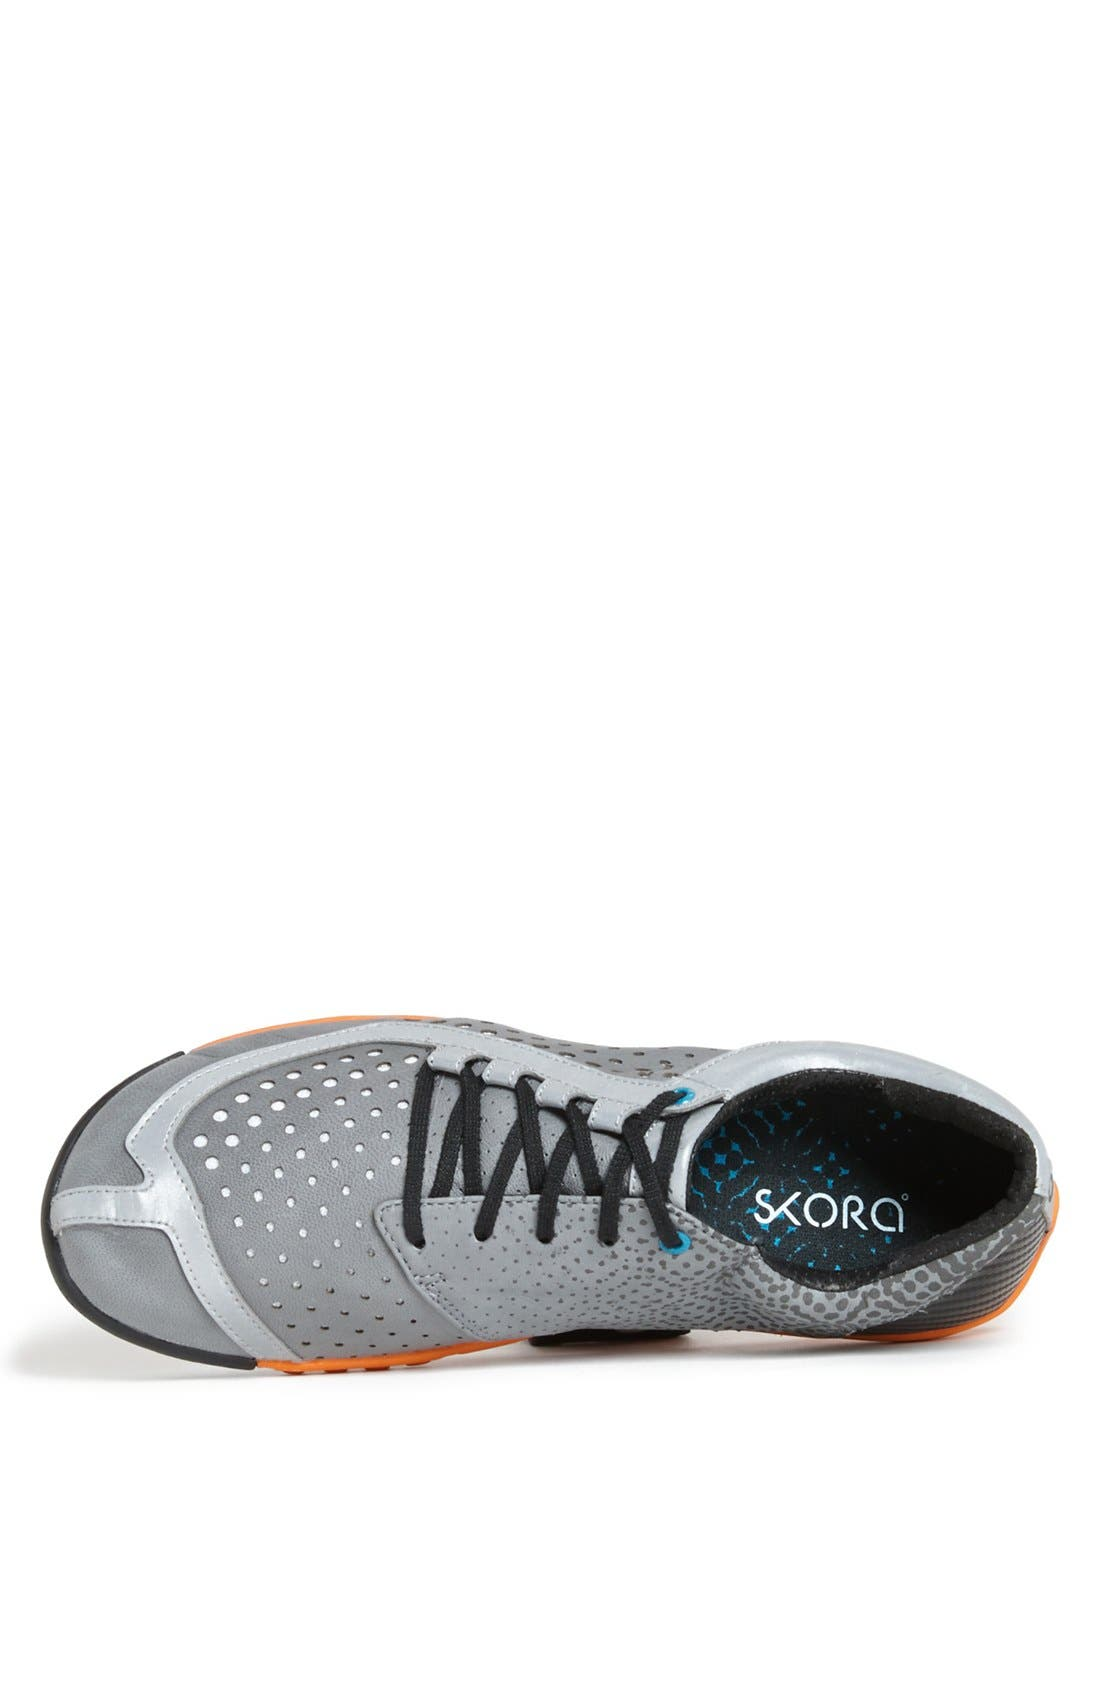 SKORA,                             'CORE' Running Shoe,                             Alternate thumbnail 3, color,                             020